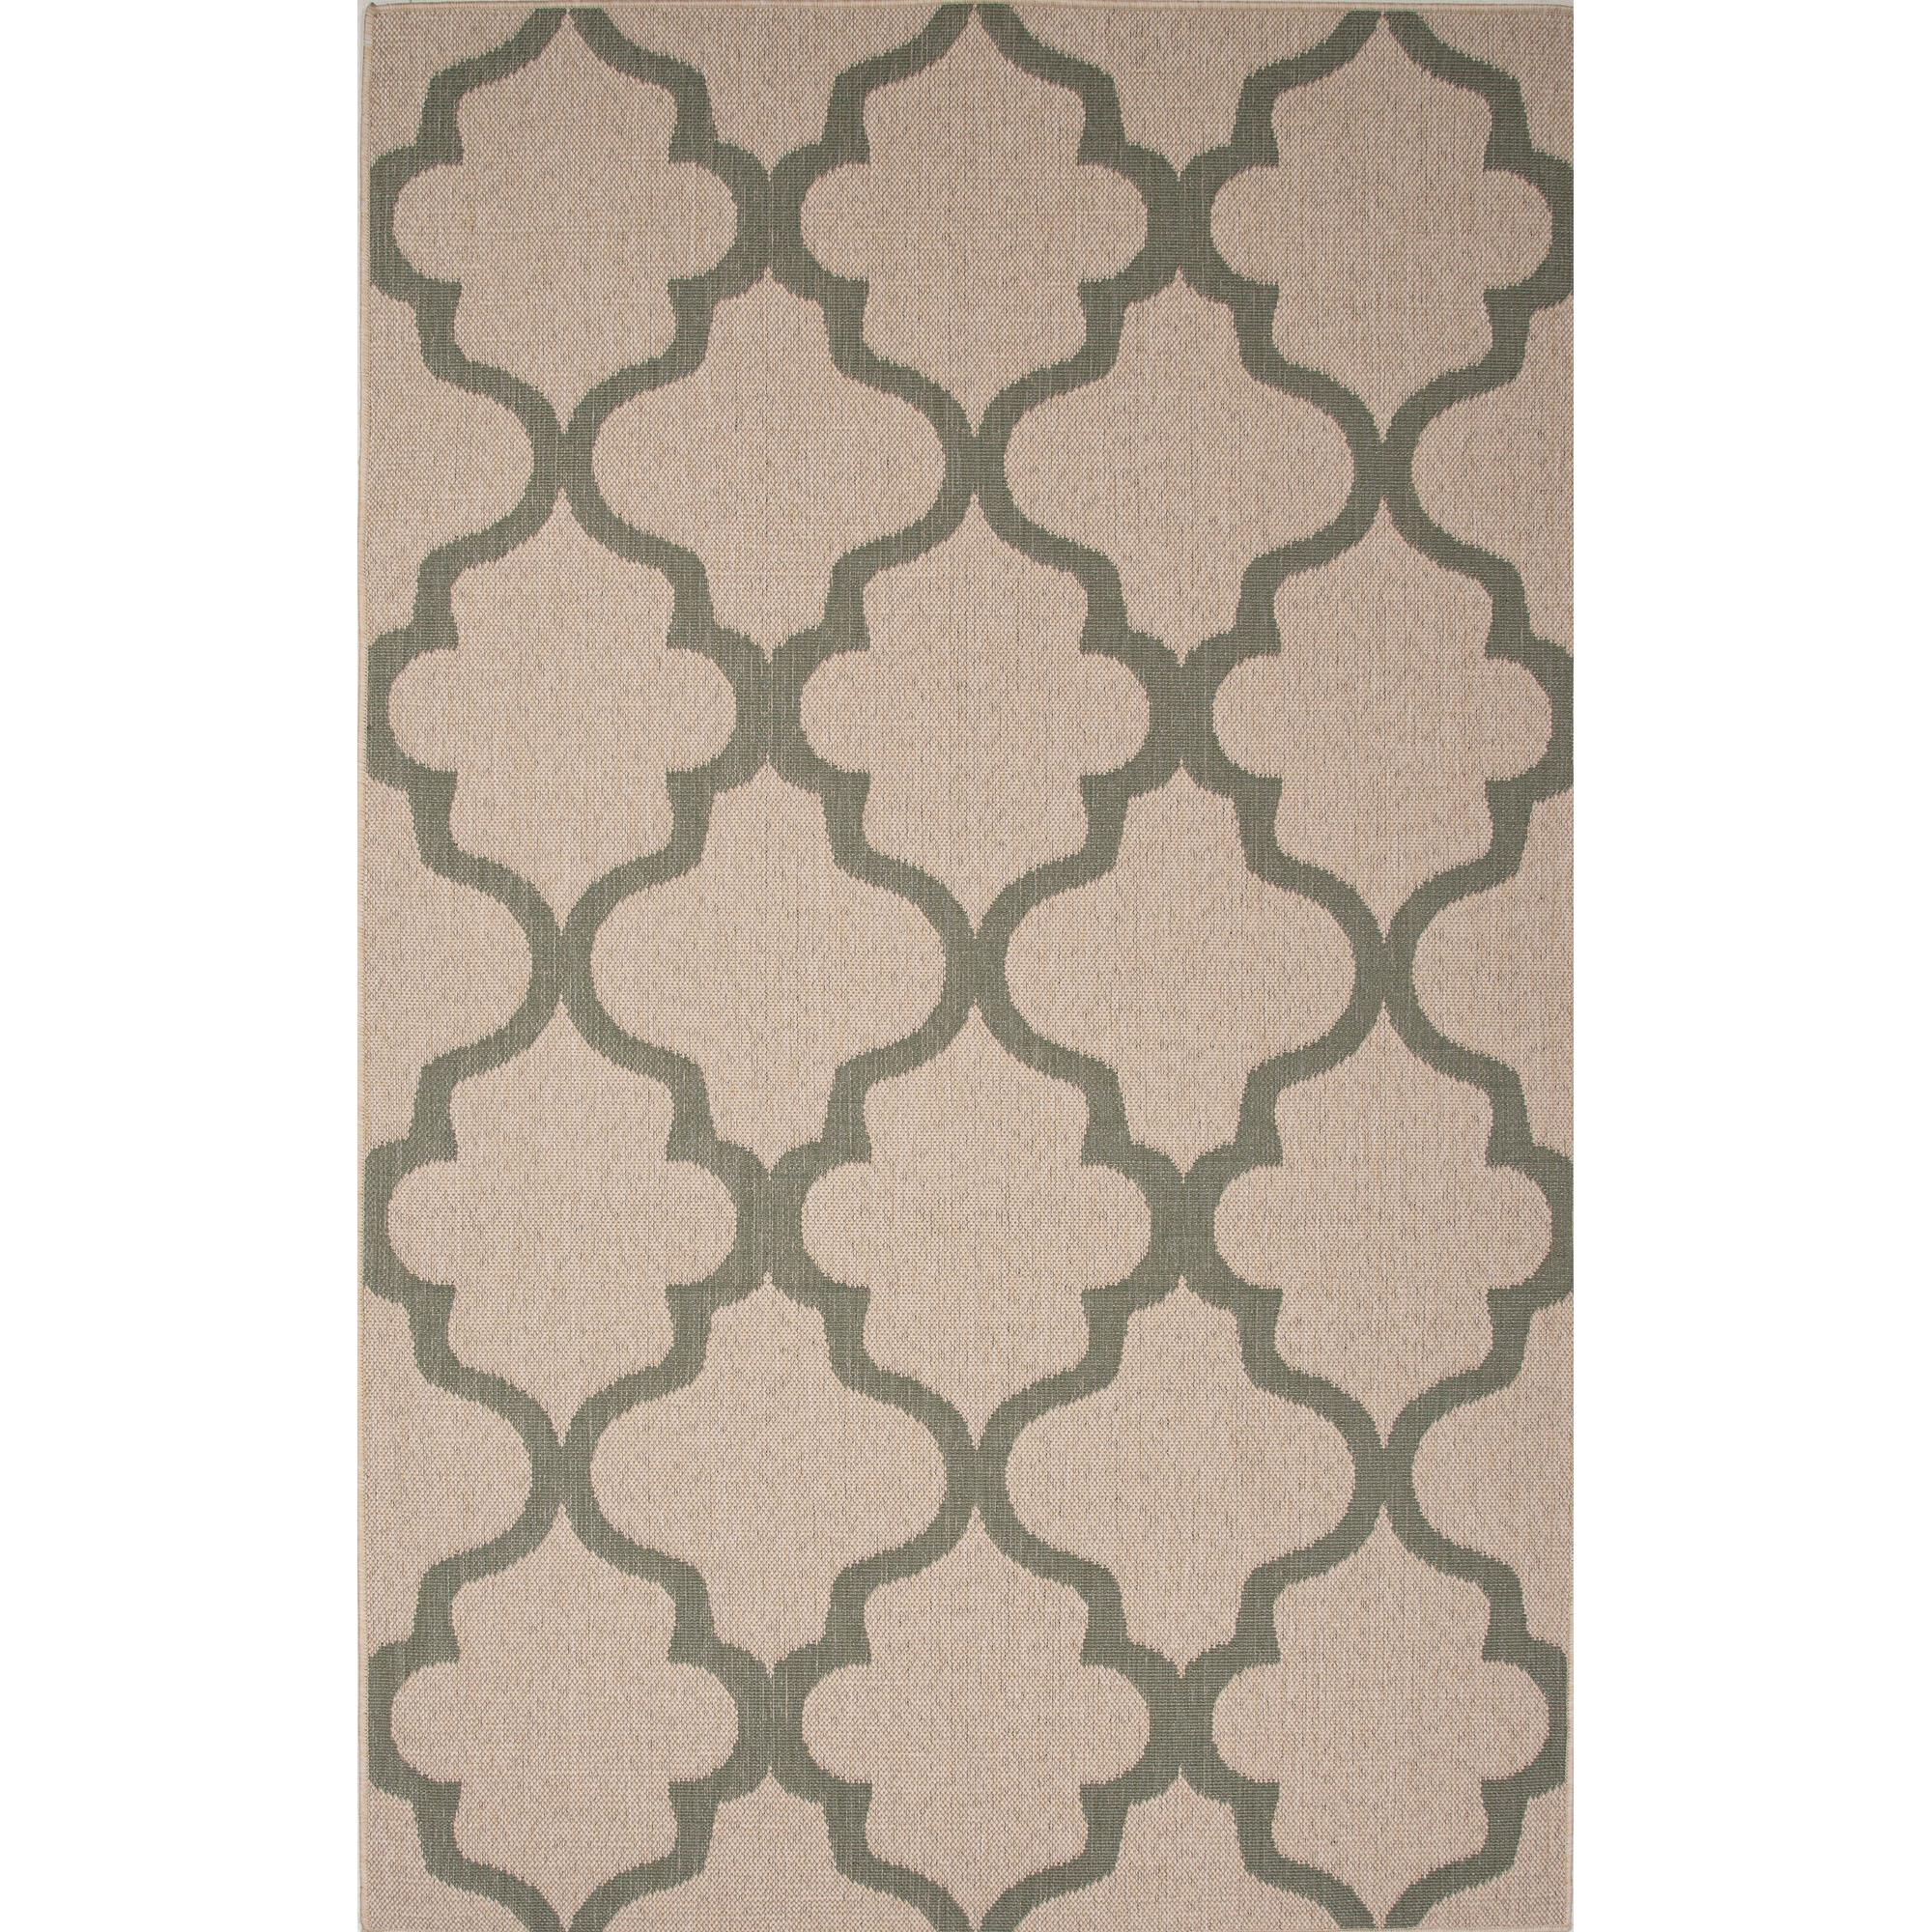 JAIPUR Rugs Breeze 5.3 x 7.6 Rug - Item Number: RUG121690